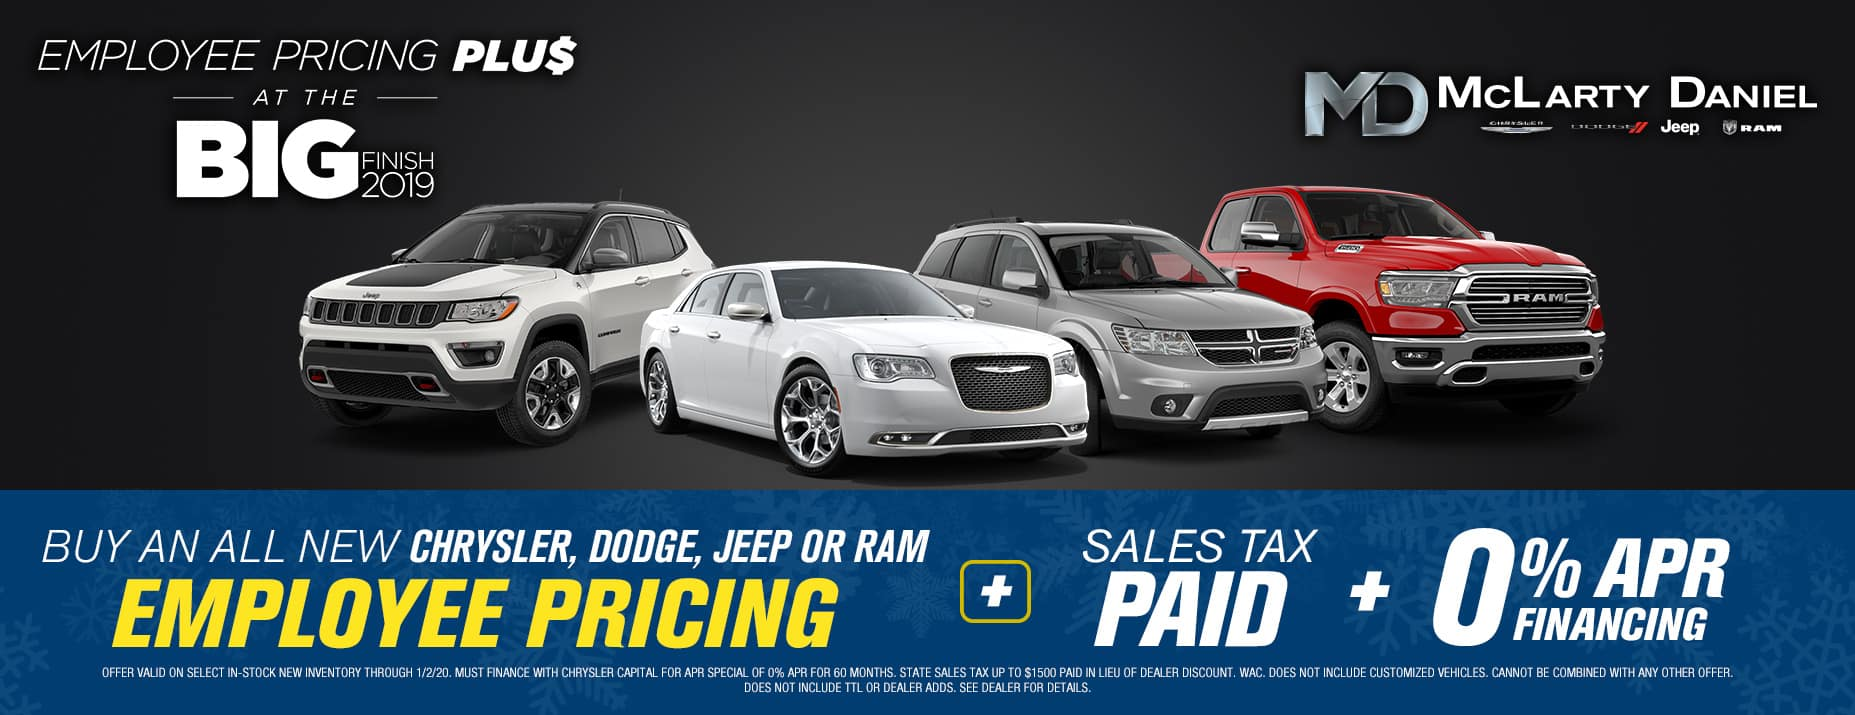 EMPLOYEE PRICING FOR EVERYONE  BUY A NEW CHRYSLER, DODGE, JEEP or RAM AND GET EMPLOYEE PRICING -PLUS- 0% APR -PLUS- SALES TAX PAID!